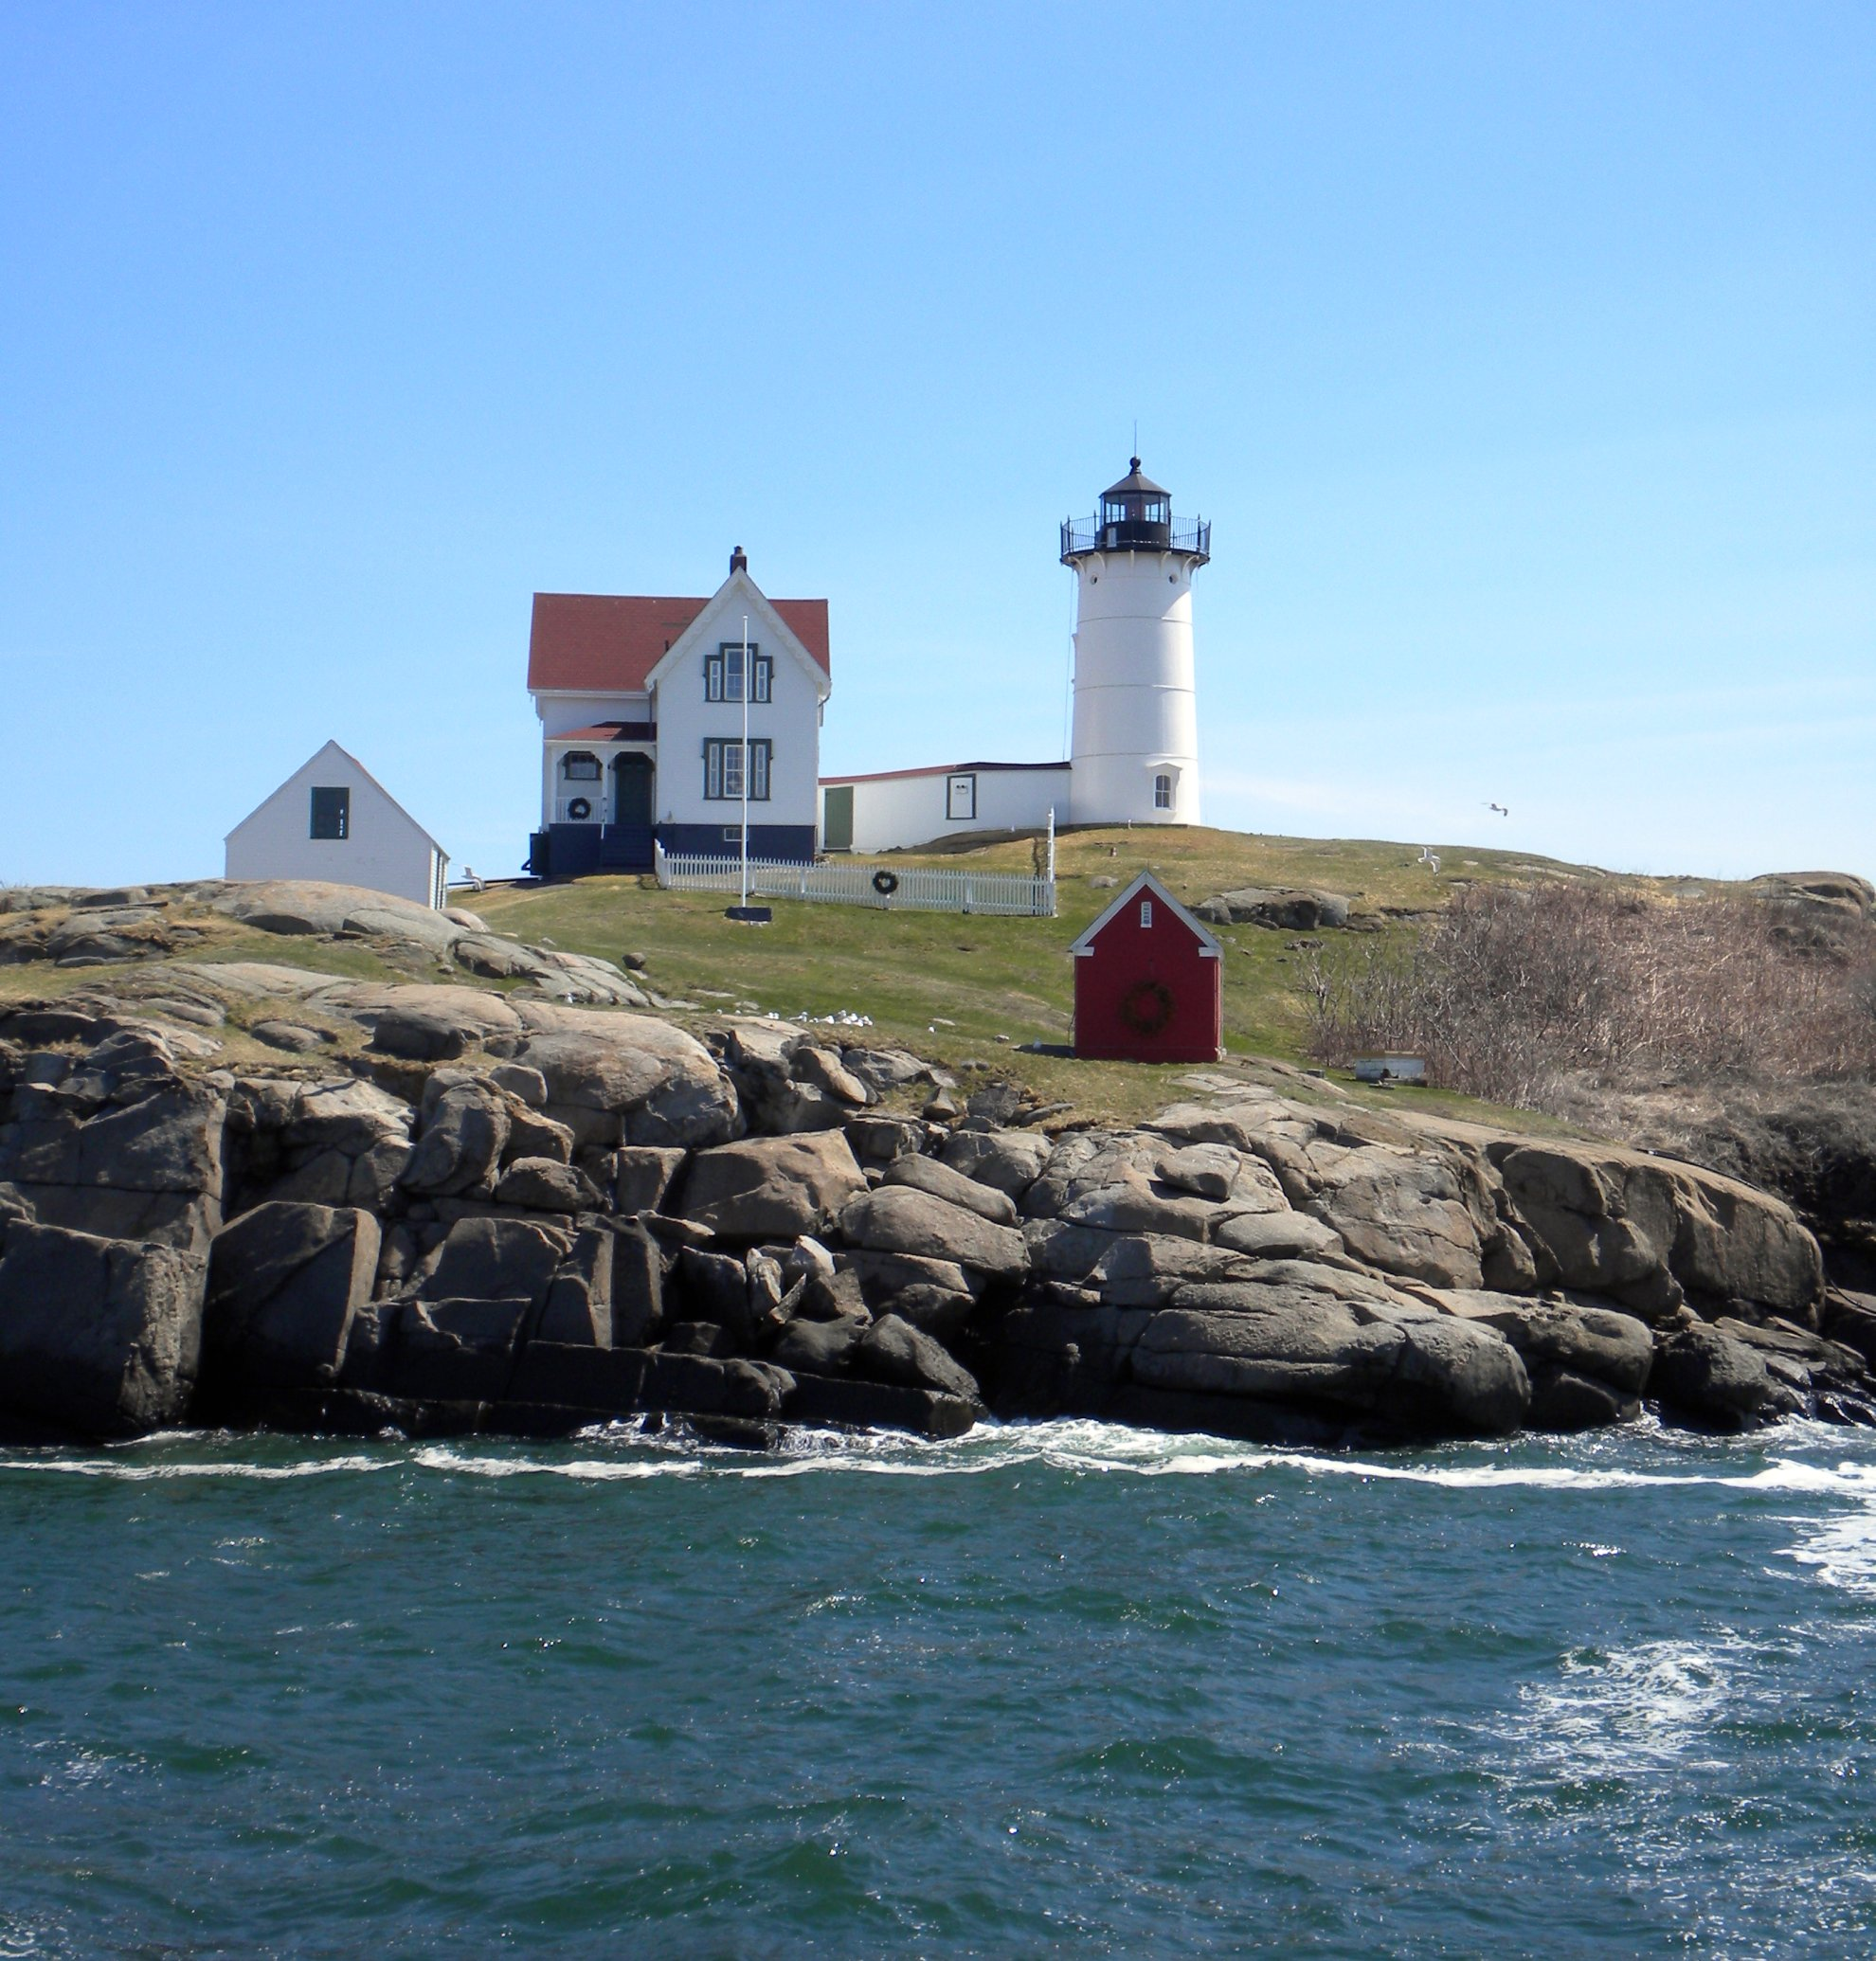 Sightseeing Place to Visit In Maine-Nubble Lighthouse (Cape Neddick Light)